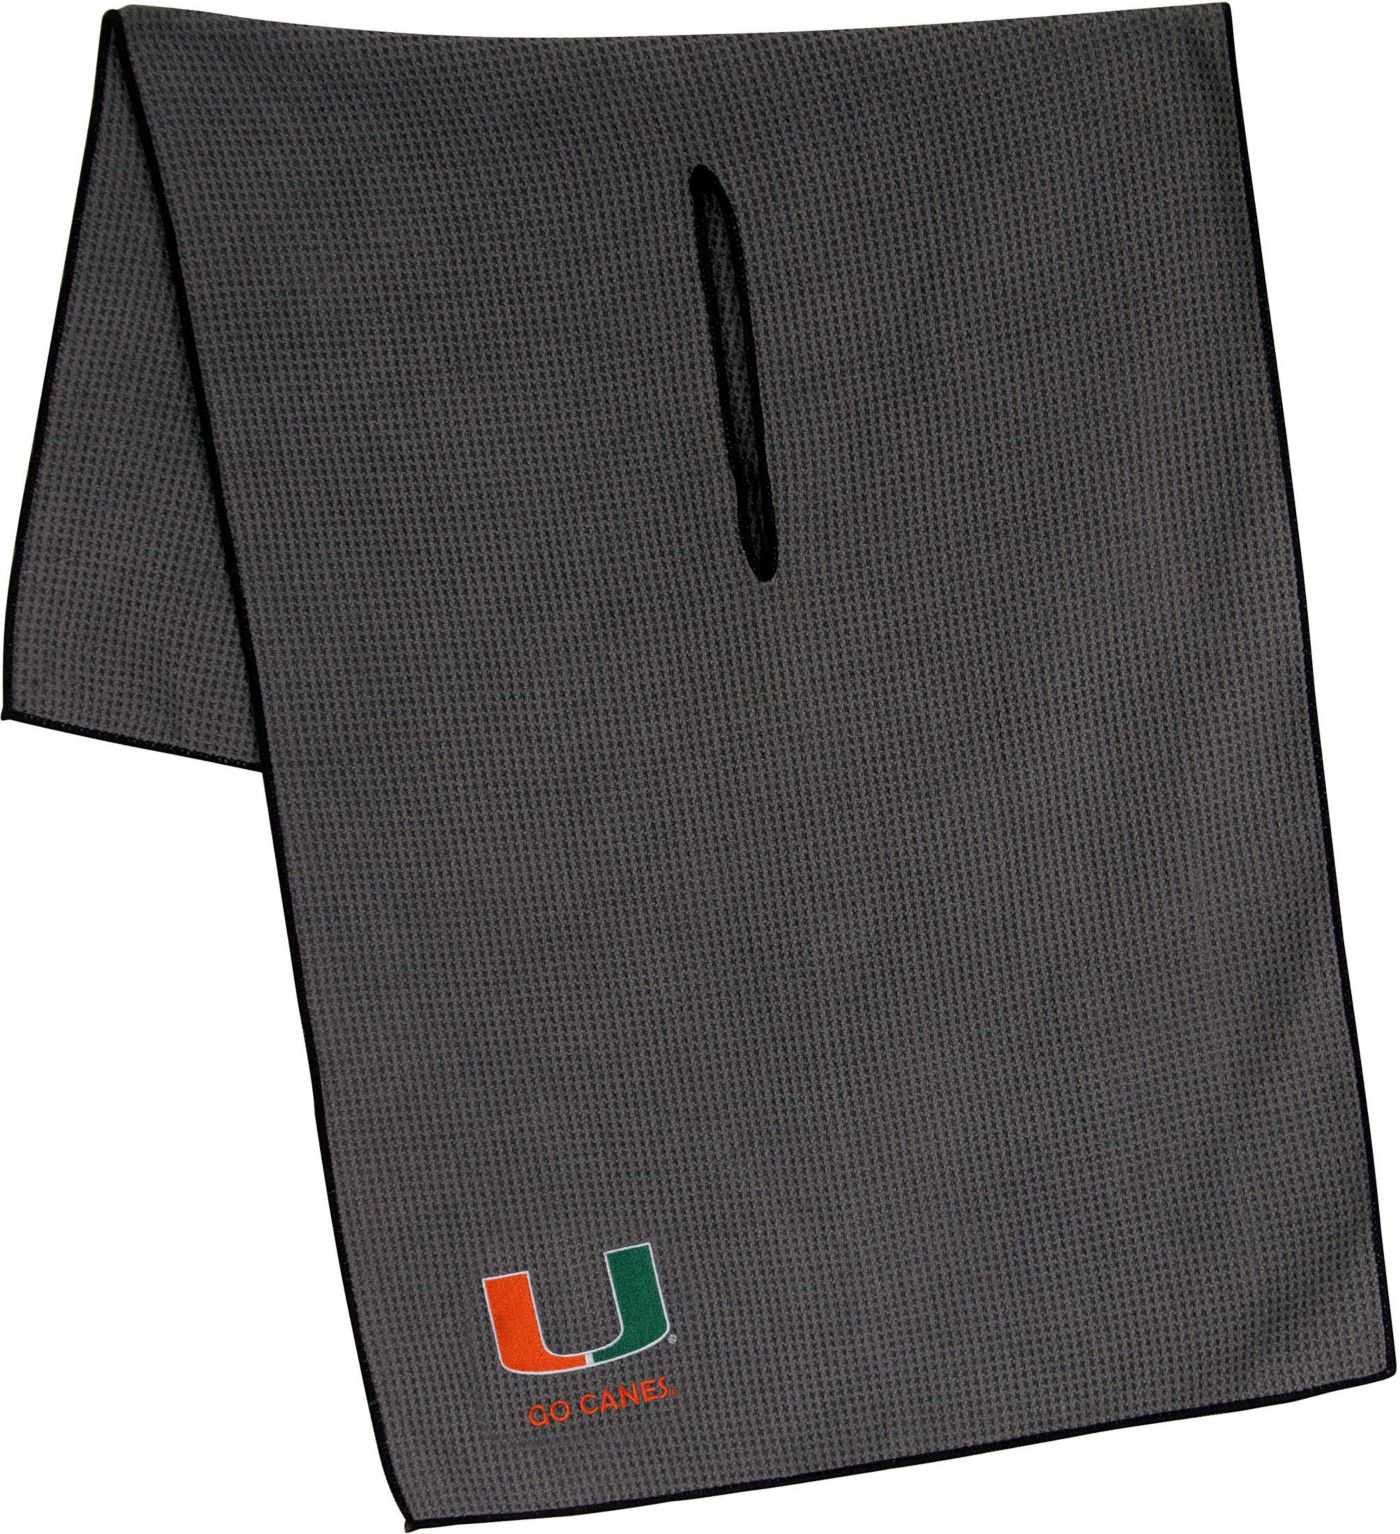 "Team Effort Miami Hurricanes 19"" x 41"" Microfiber Golf Towel"